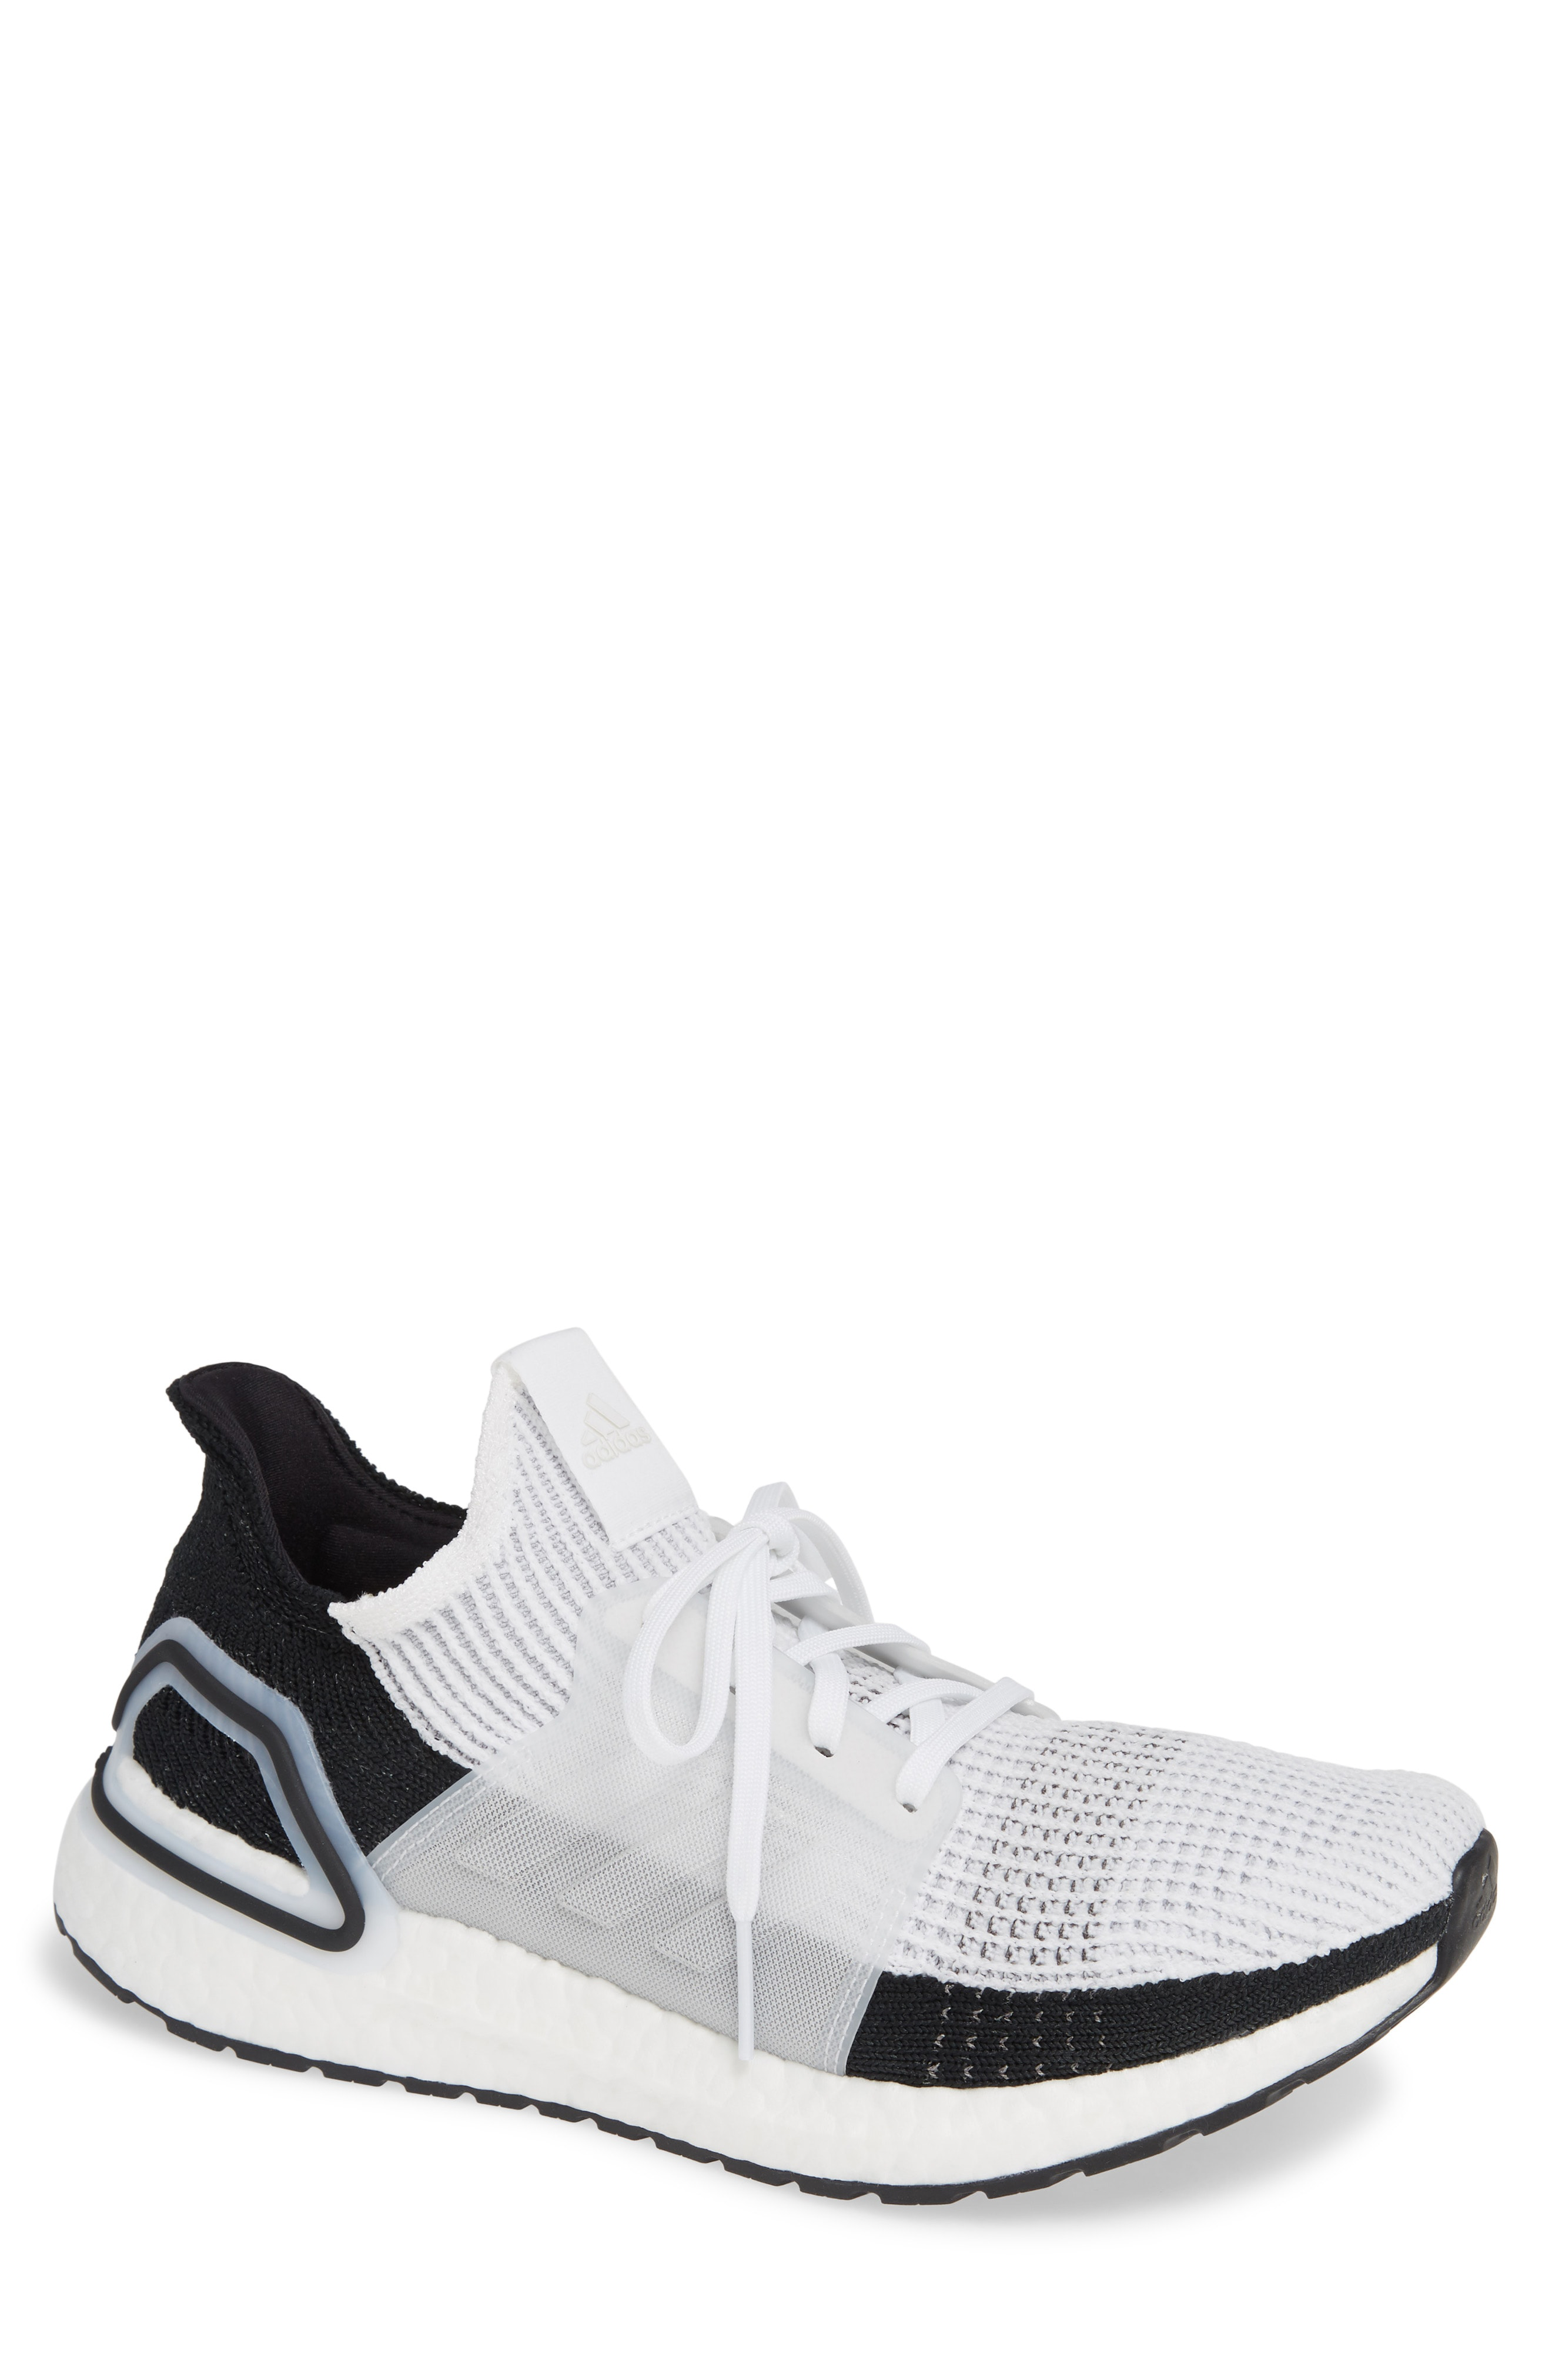 05cae197cc51d Adidas Originals Adidas Men s Ultraboost 19 Running Sneakers From Finish  Line In White